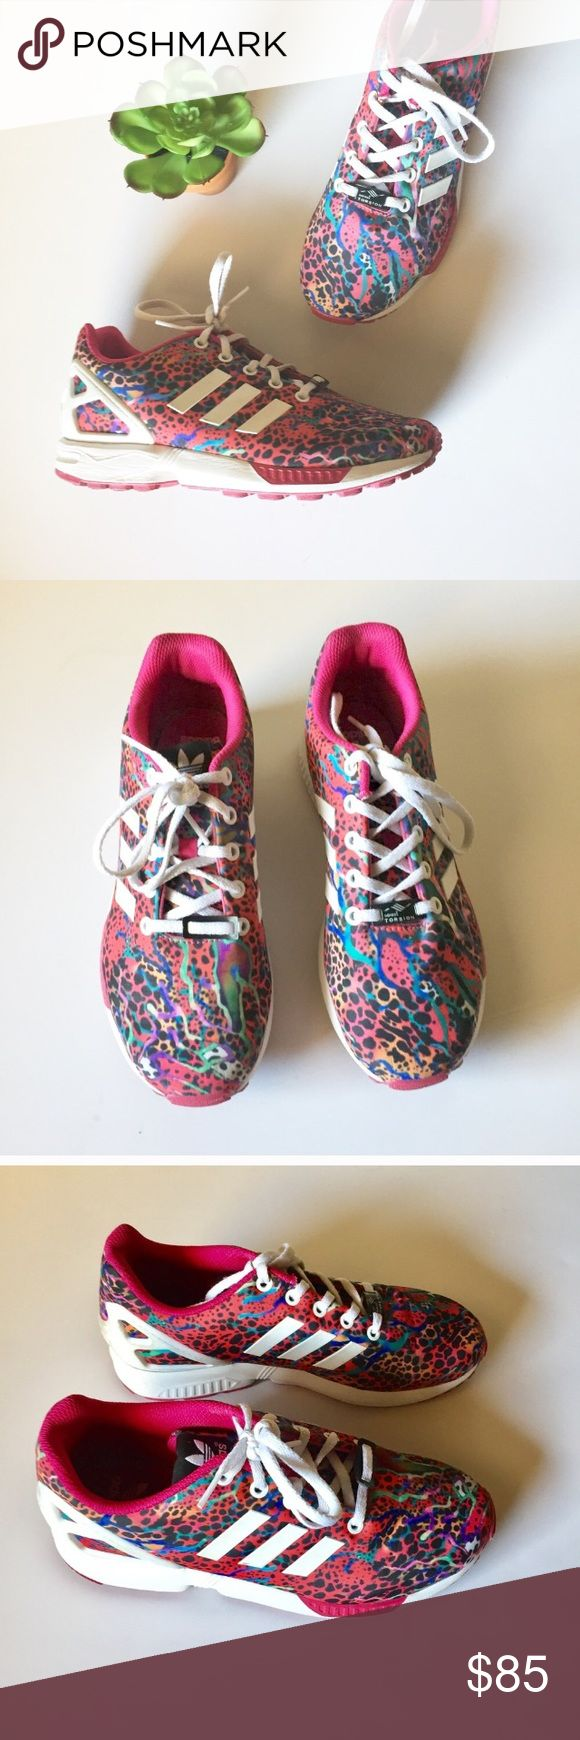 Pink TORSION ZX FLUX PINK ADIDAS TORSION ZX FLUX Listed a 6. FITS A WOMEN'S SIZE 8!!! Great Condition. Make an offer. adidas Shoes